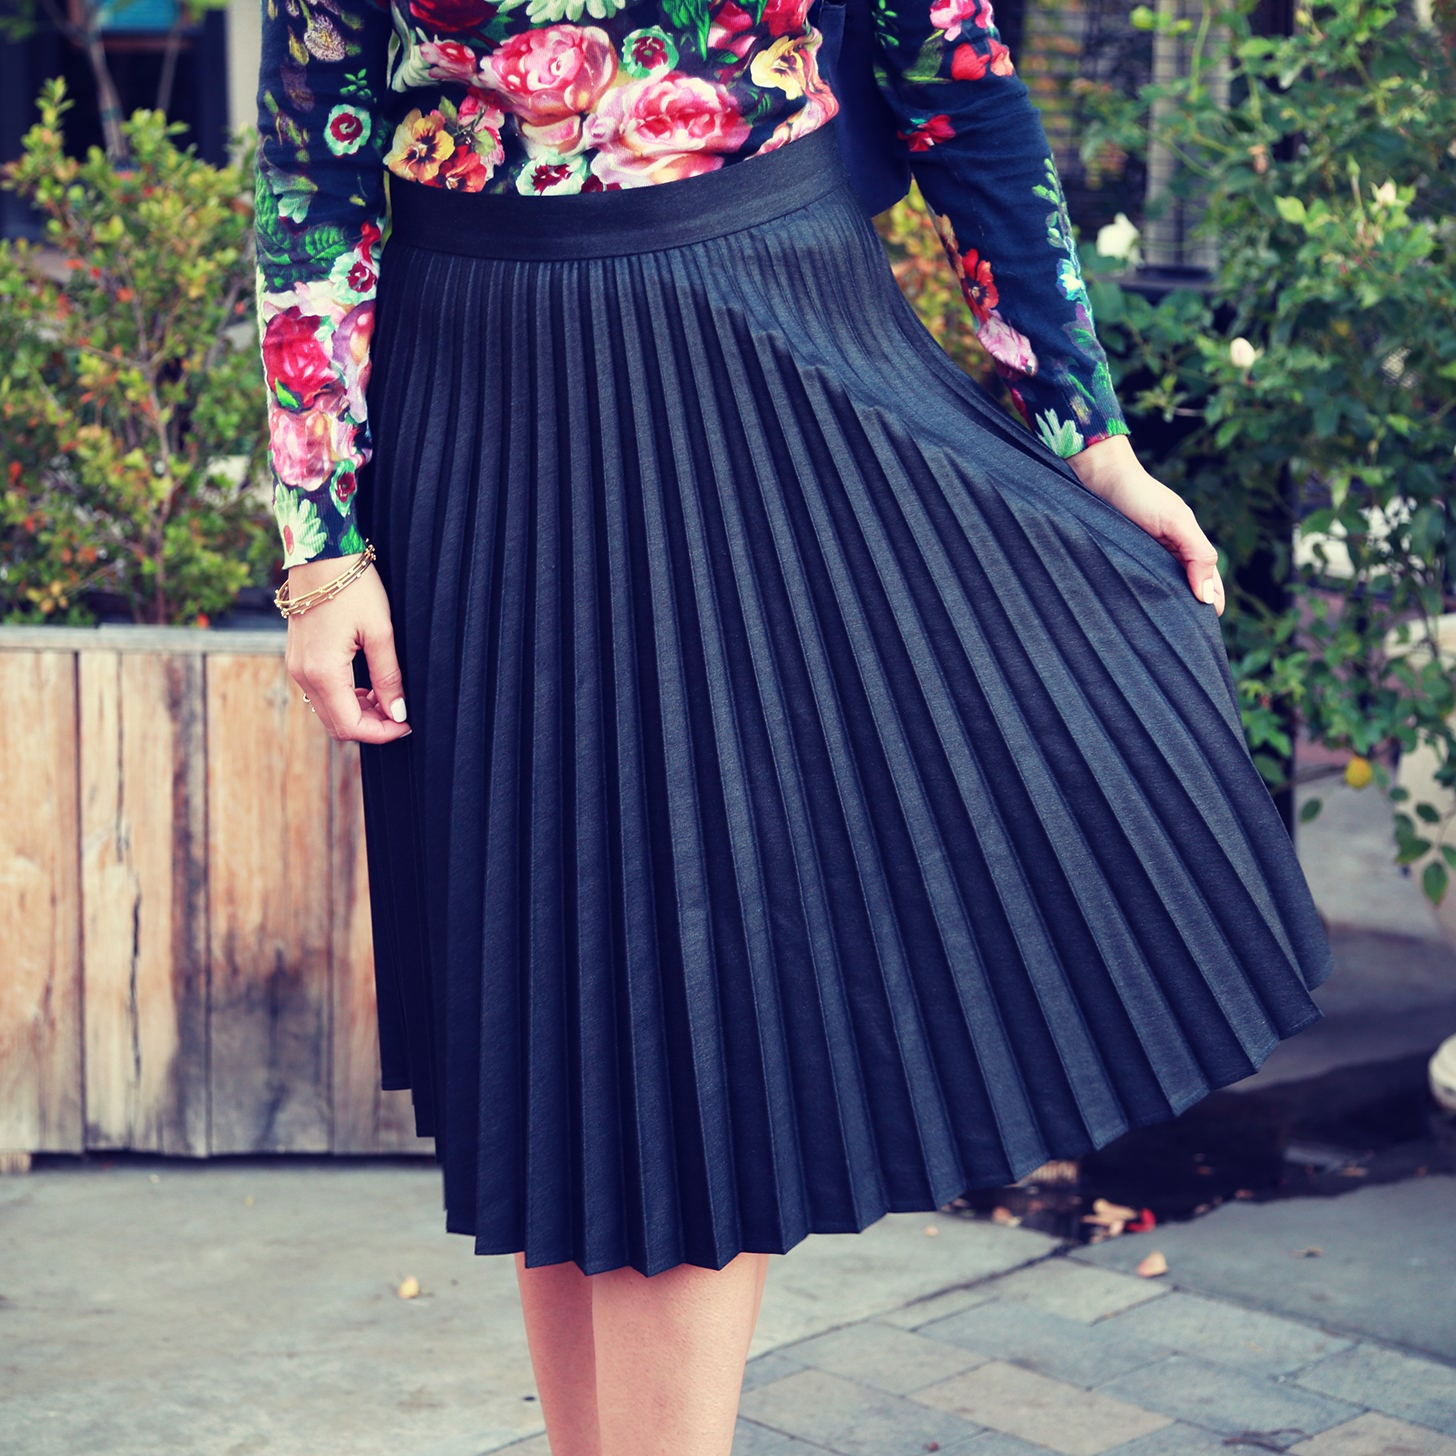 How-Wear-Pleated-Skirt-Video